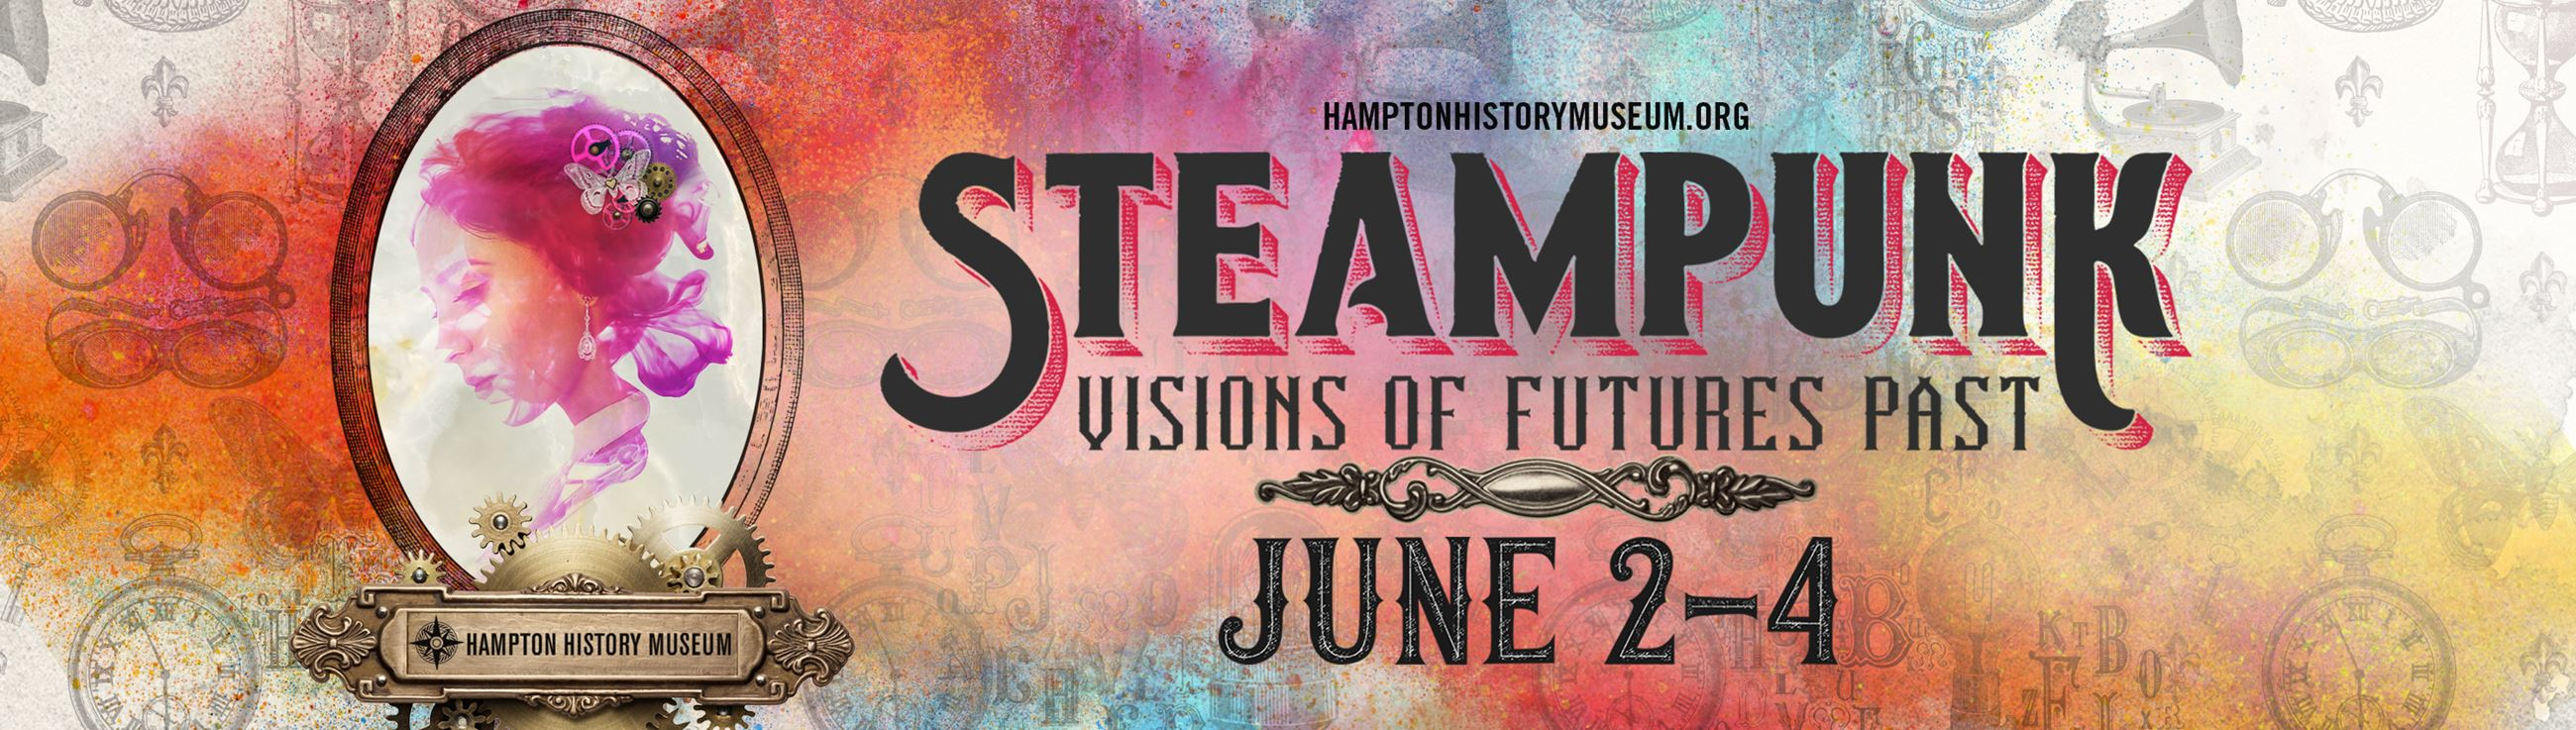 Steampunk: Visions of Future Past